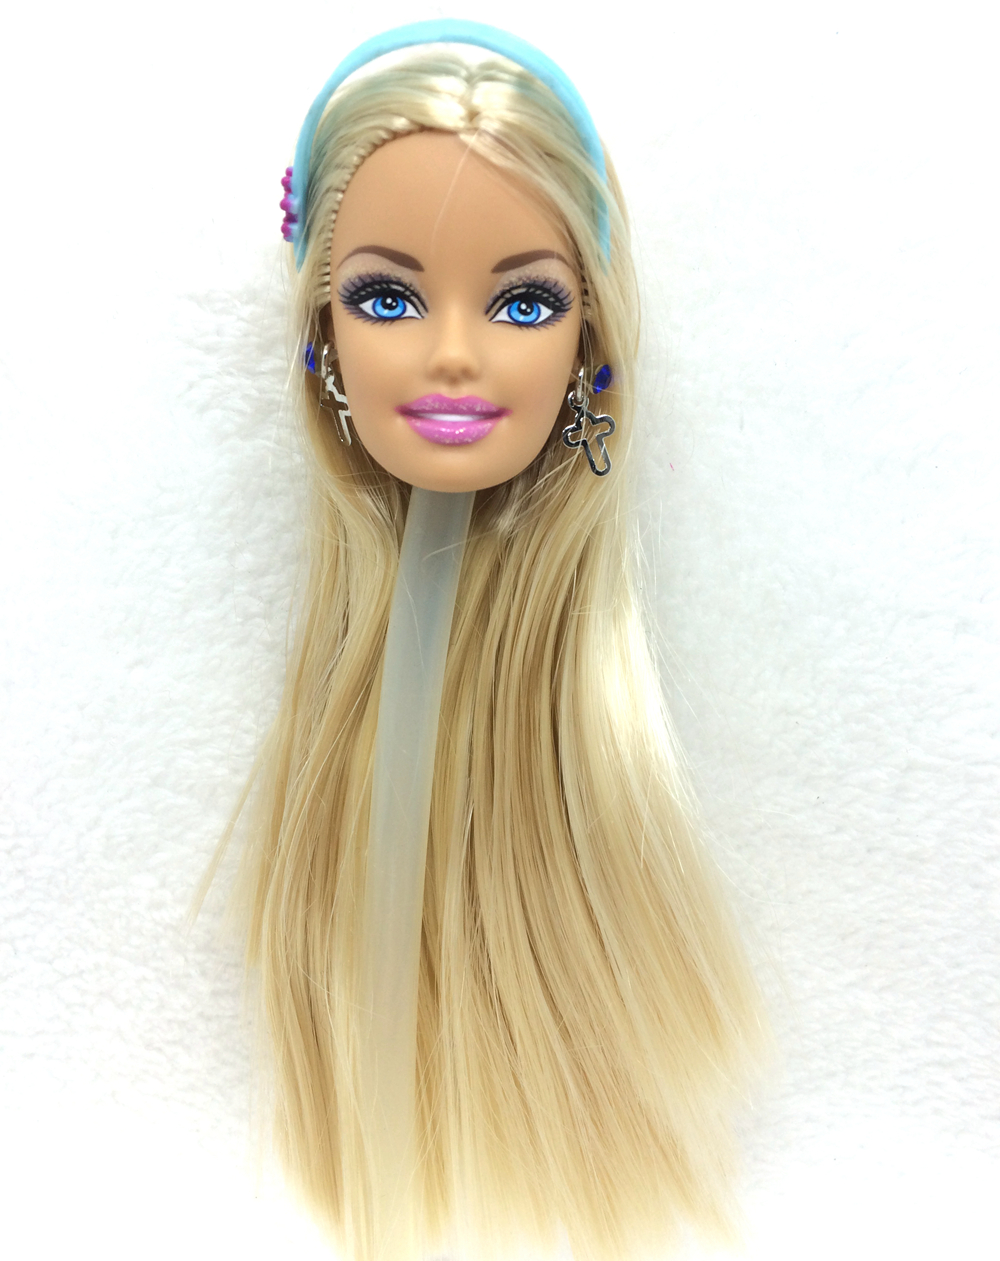 NK One Pcs Unique Doll Head With One Pair Of  Style Metallic Earrings For Barbie Dolls Greatest DIY Present For Women'  Doll